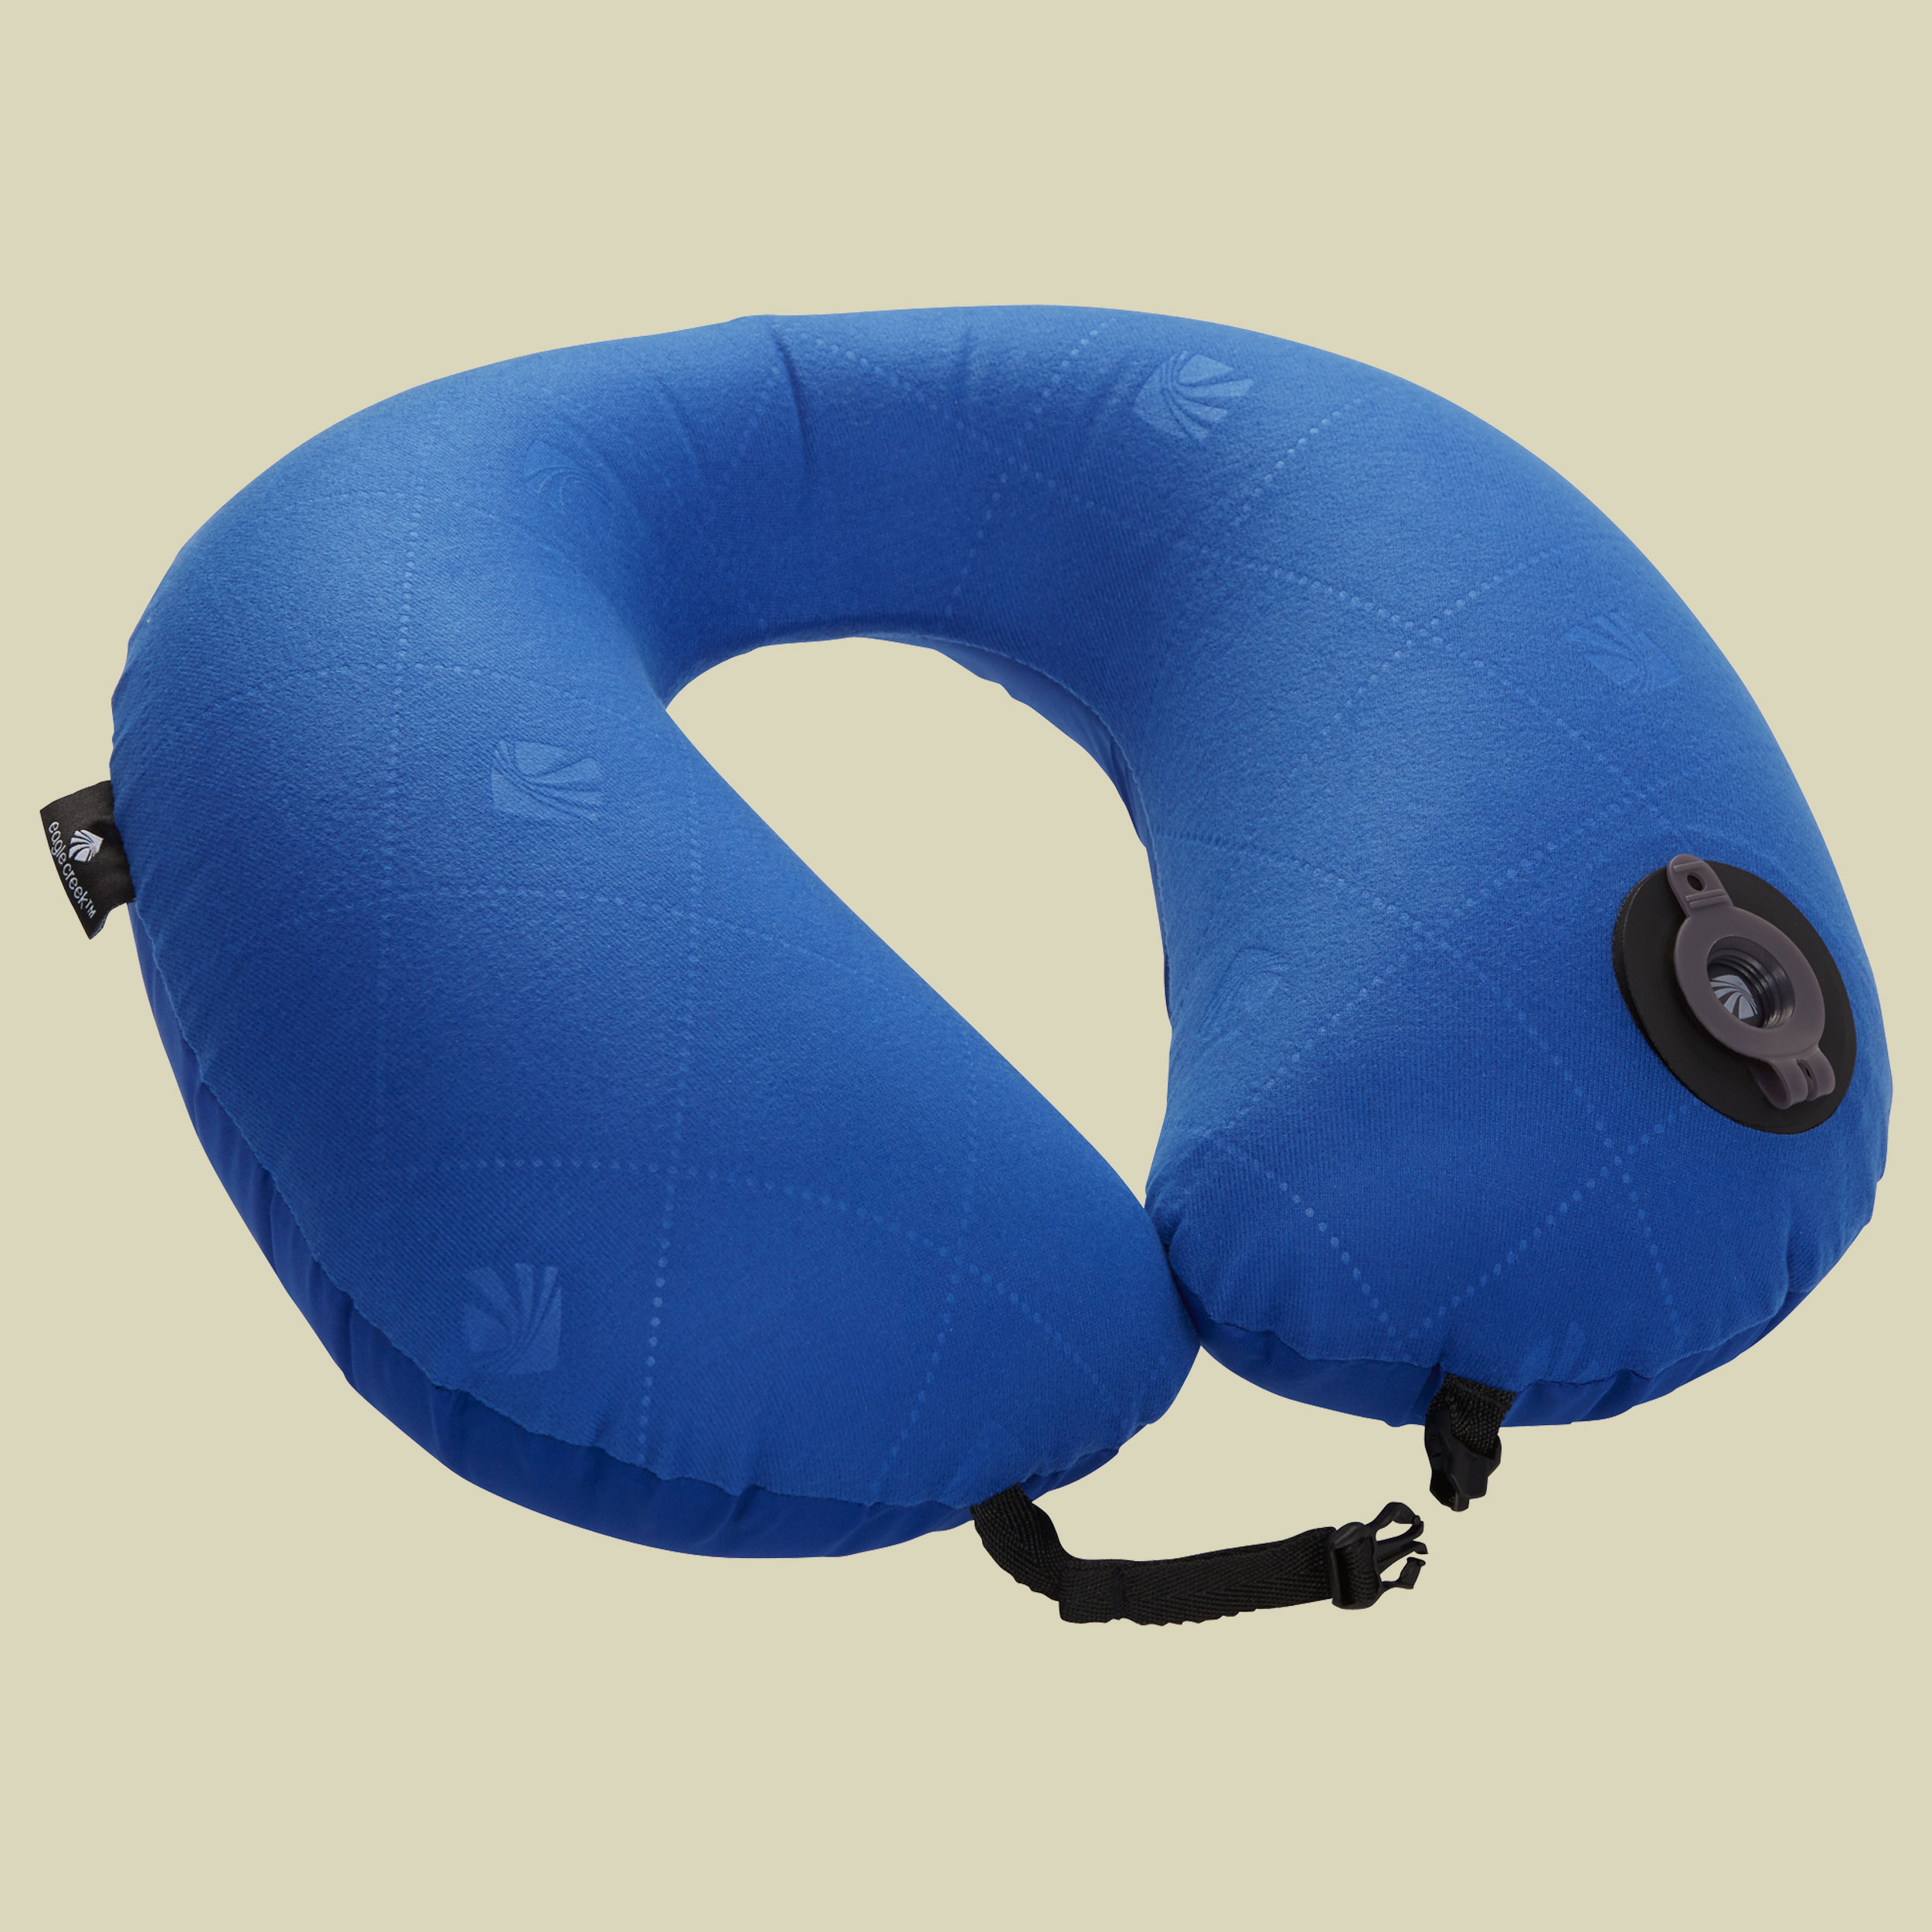 Eagle Creek Exhale Neck Pillow aufblasbares Nackenkissen Größe one size blue sea